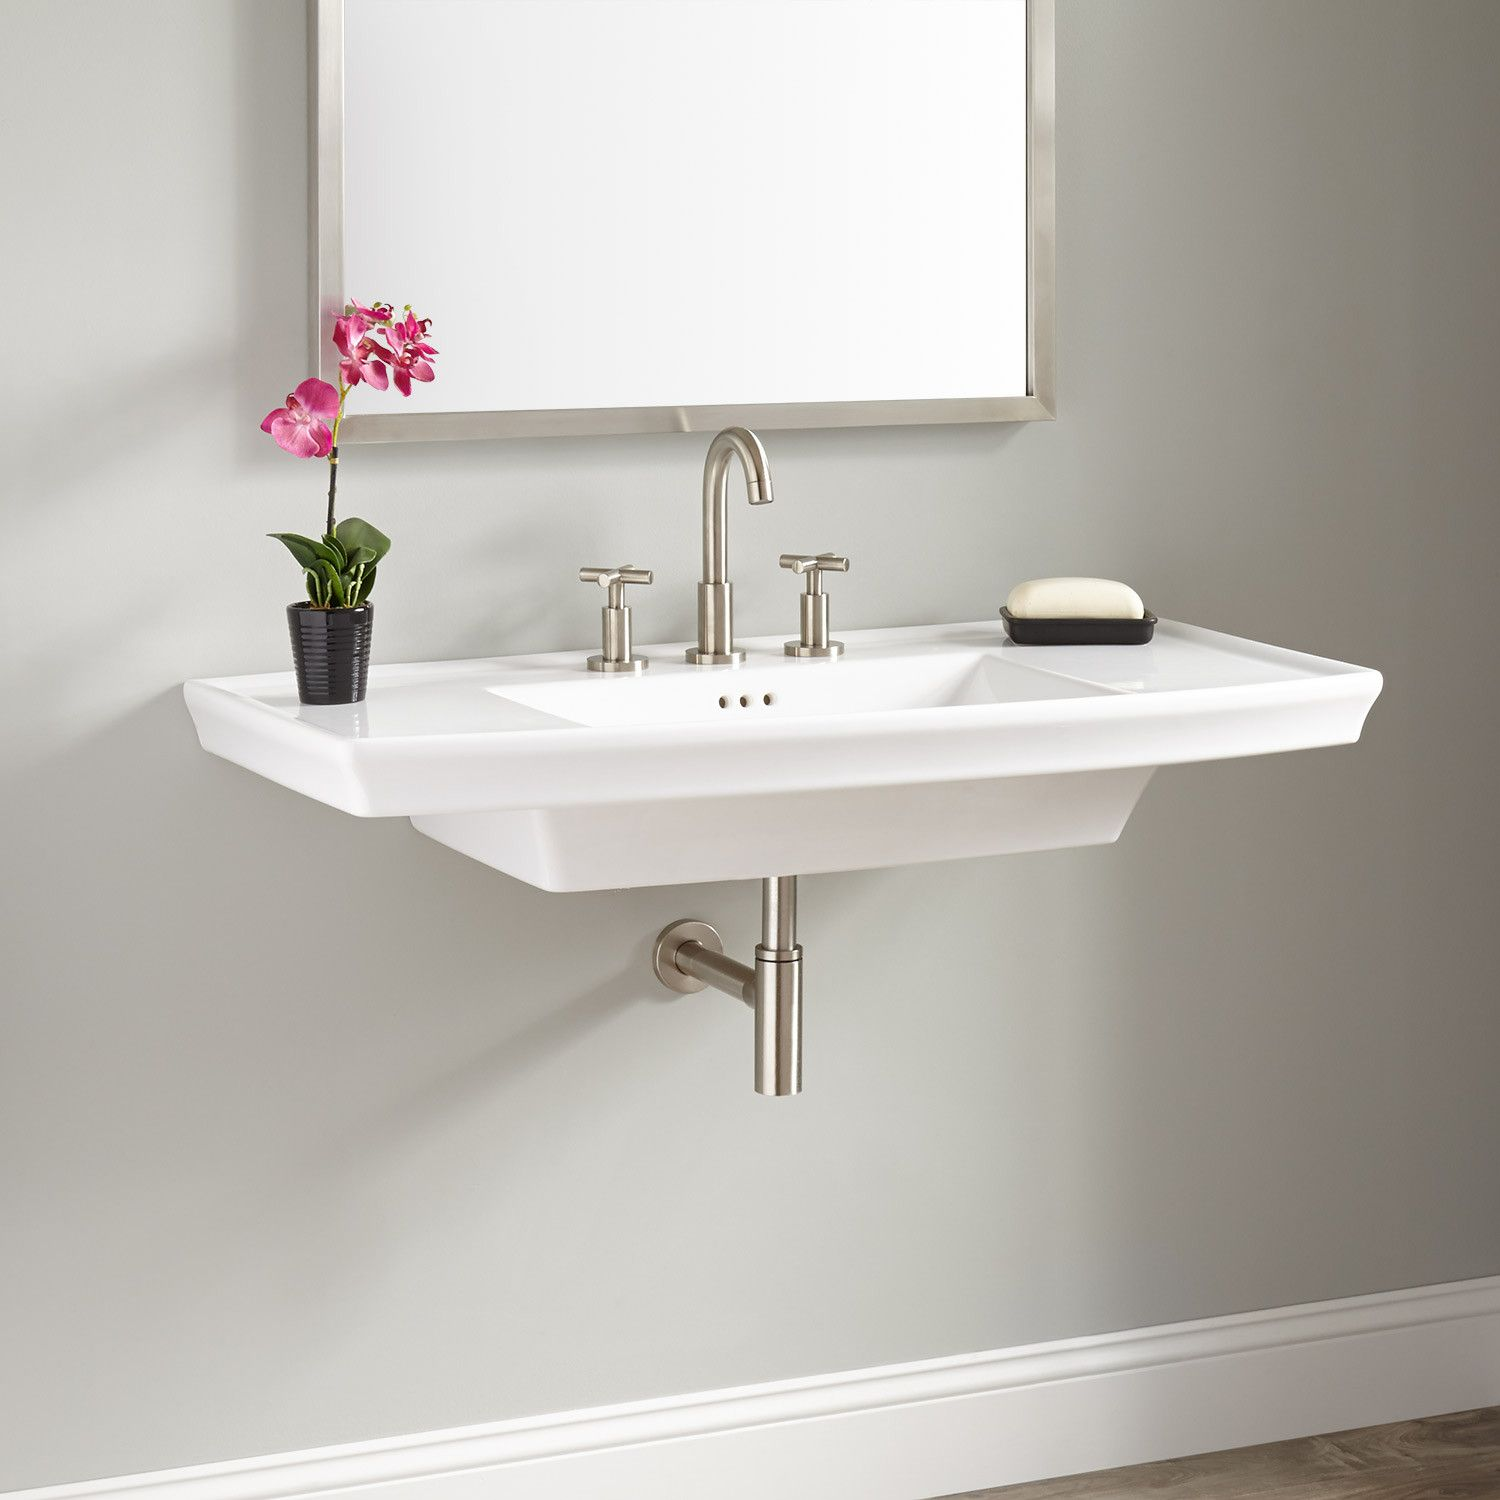 Olney Porcelain Wall Mount Sink Plumbing And Parts